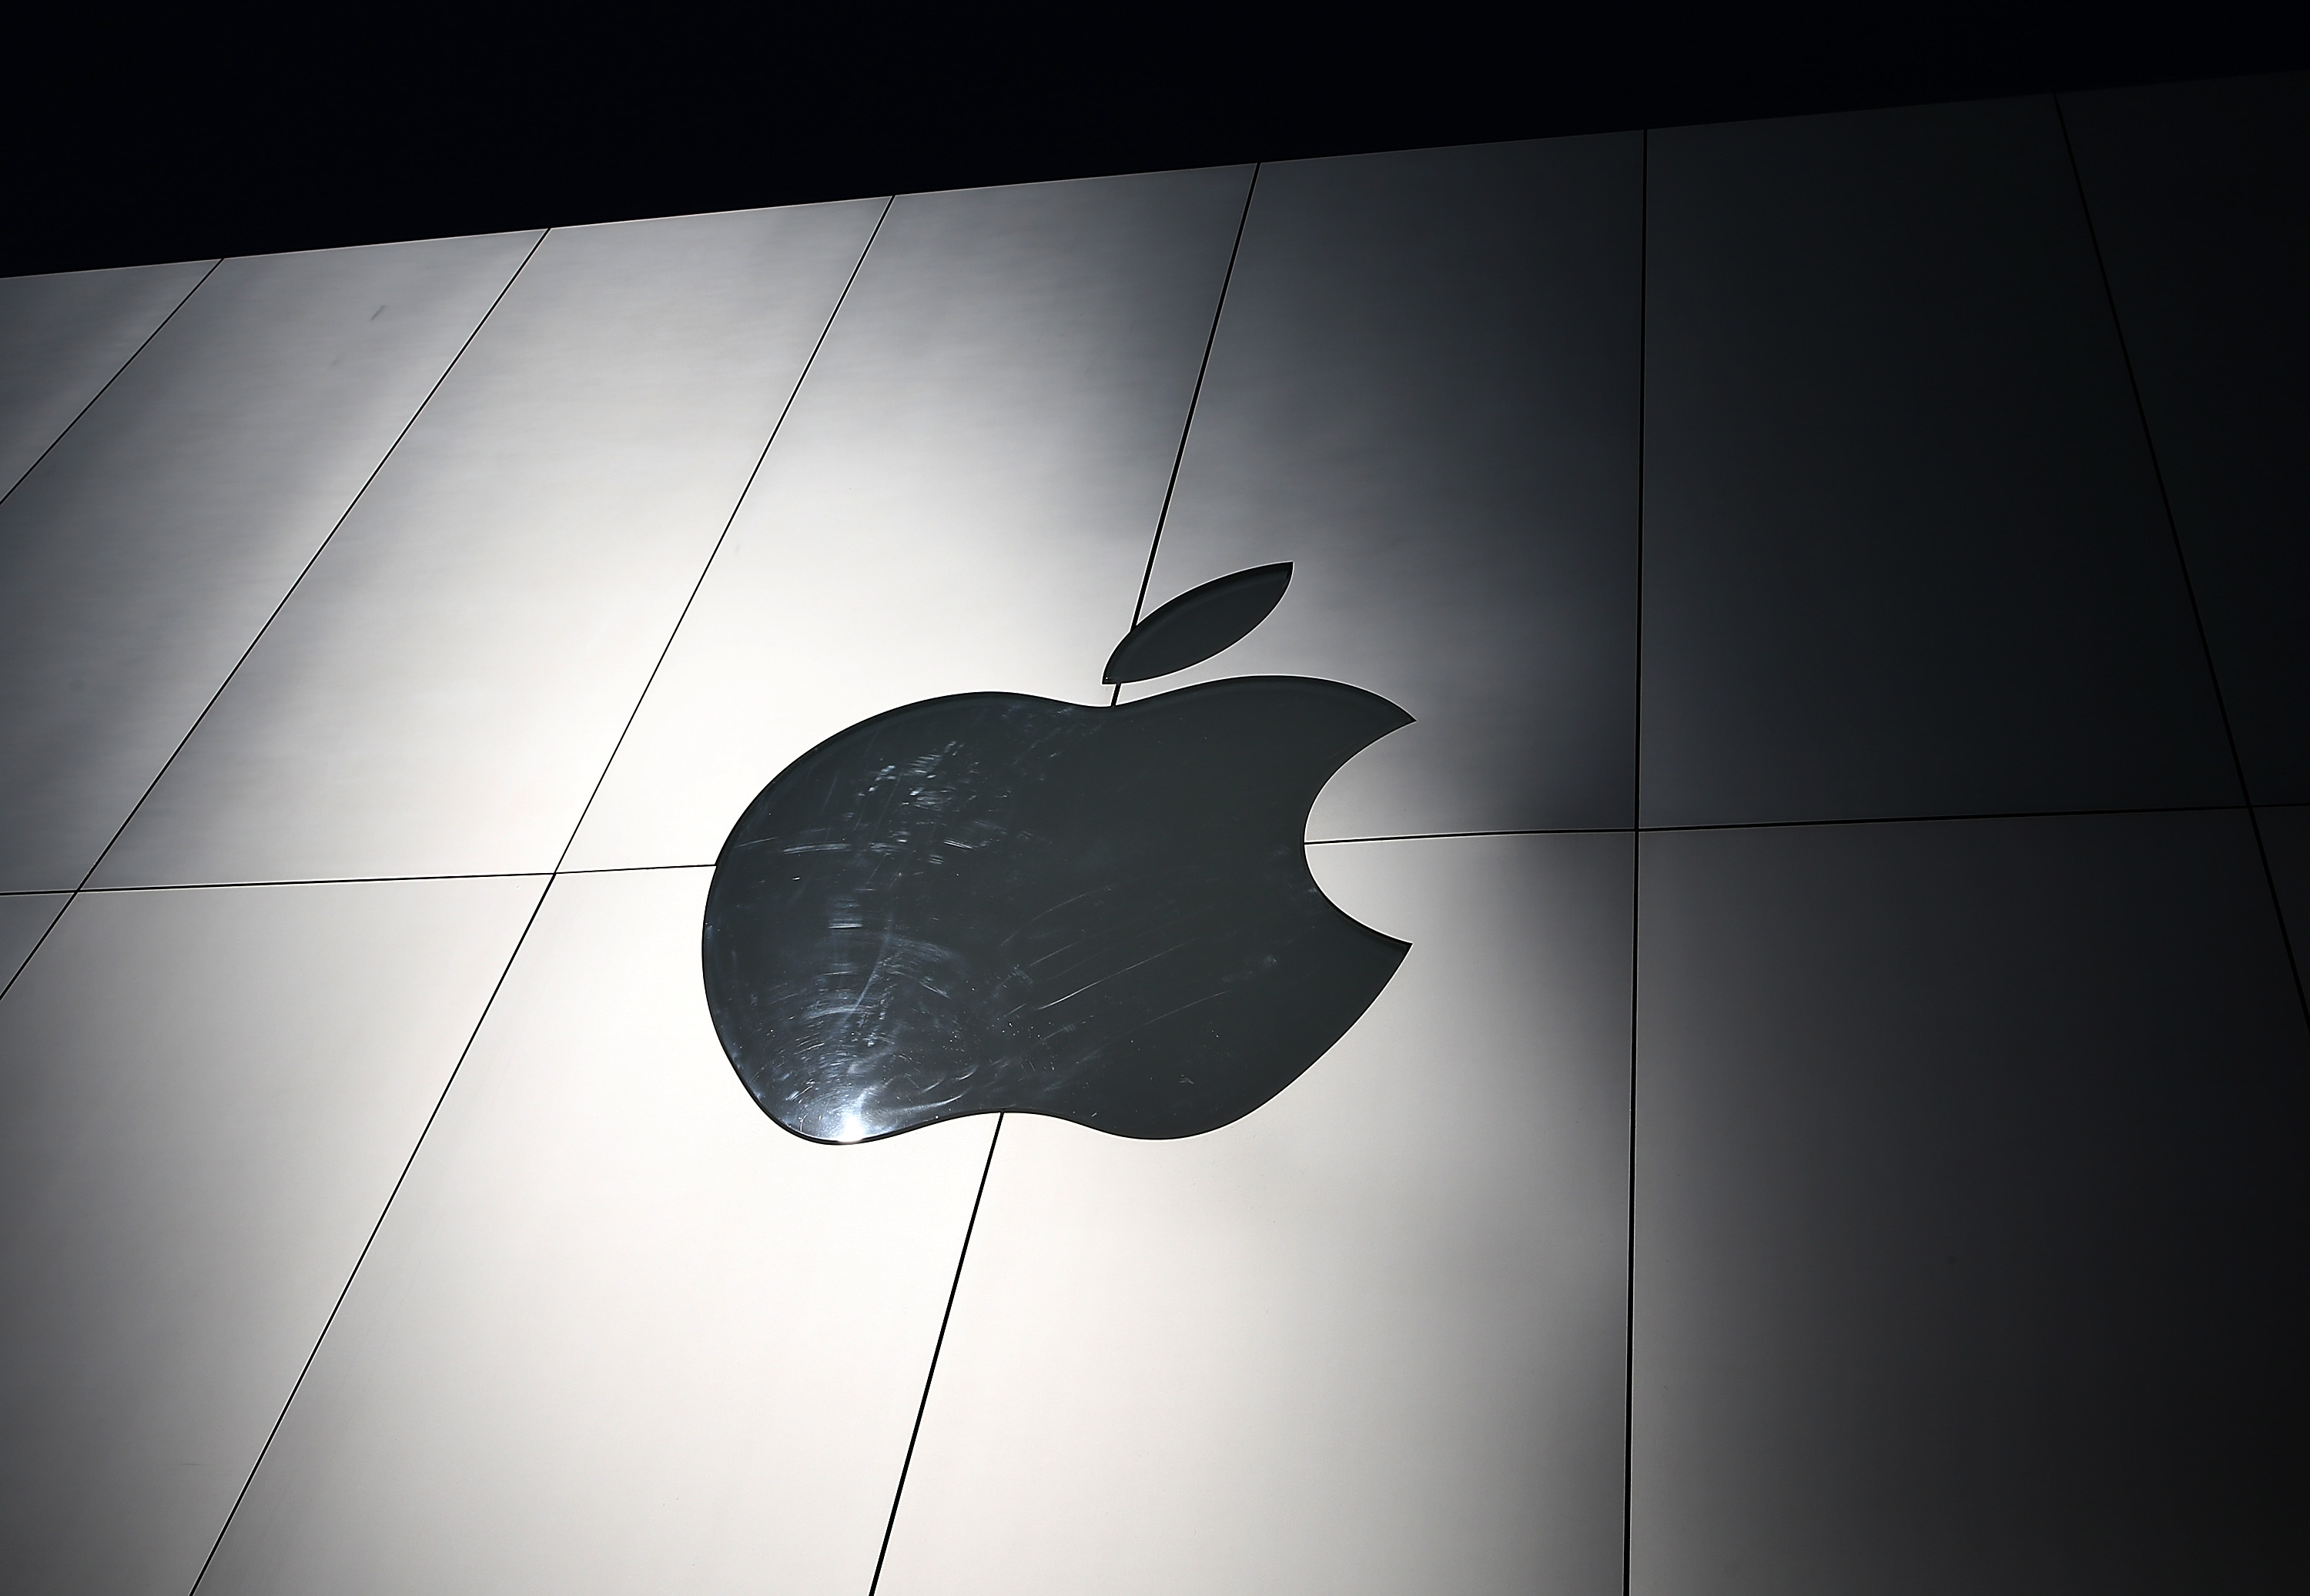 Apple Warns Users Against Setting iPhone Date to 1970, Promises Update to Fix Bug